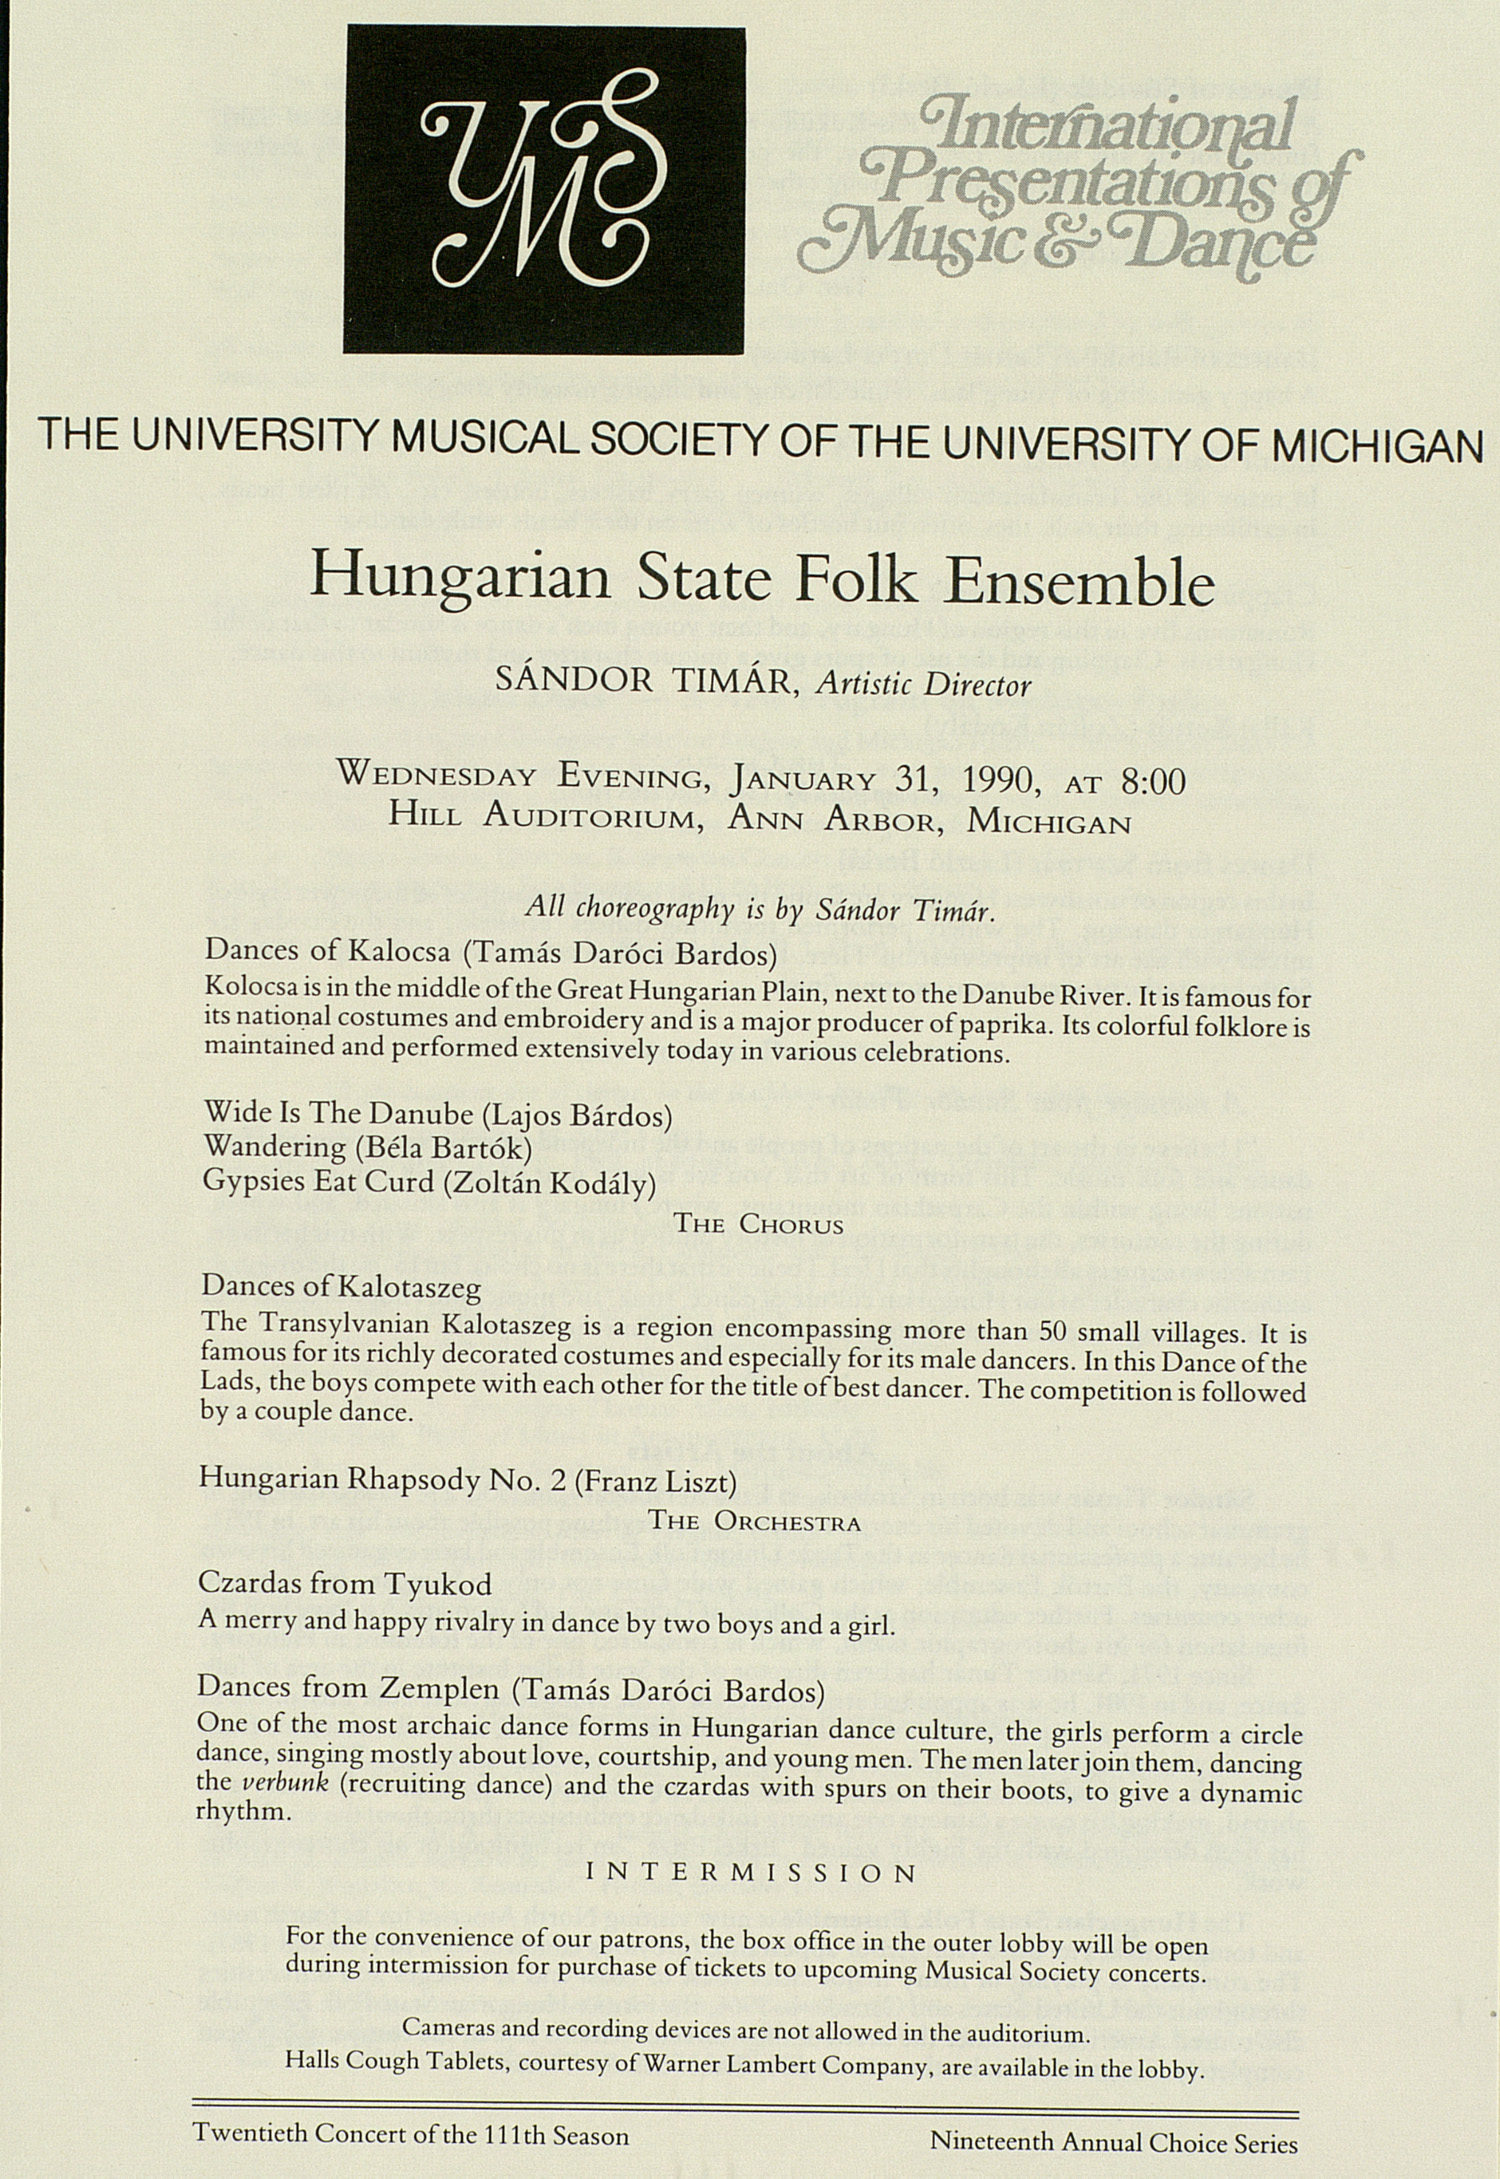 UMS Concert Program, January 31, 1990: Hungarian State Folk Ensemble --  image